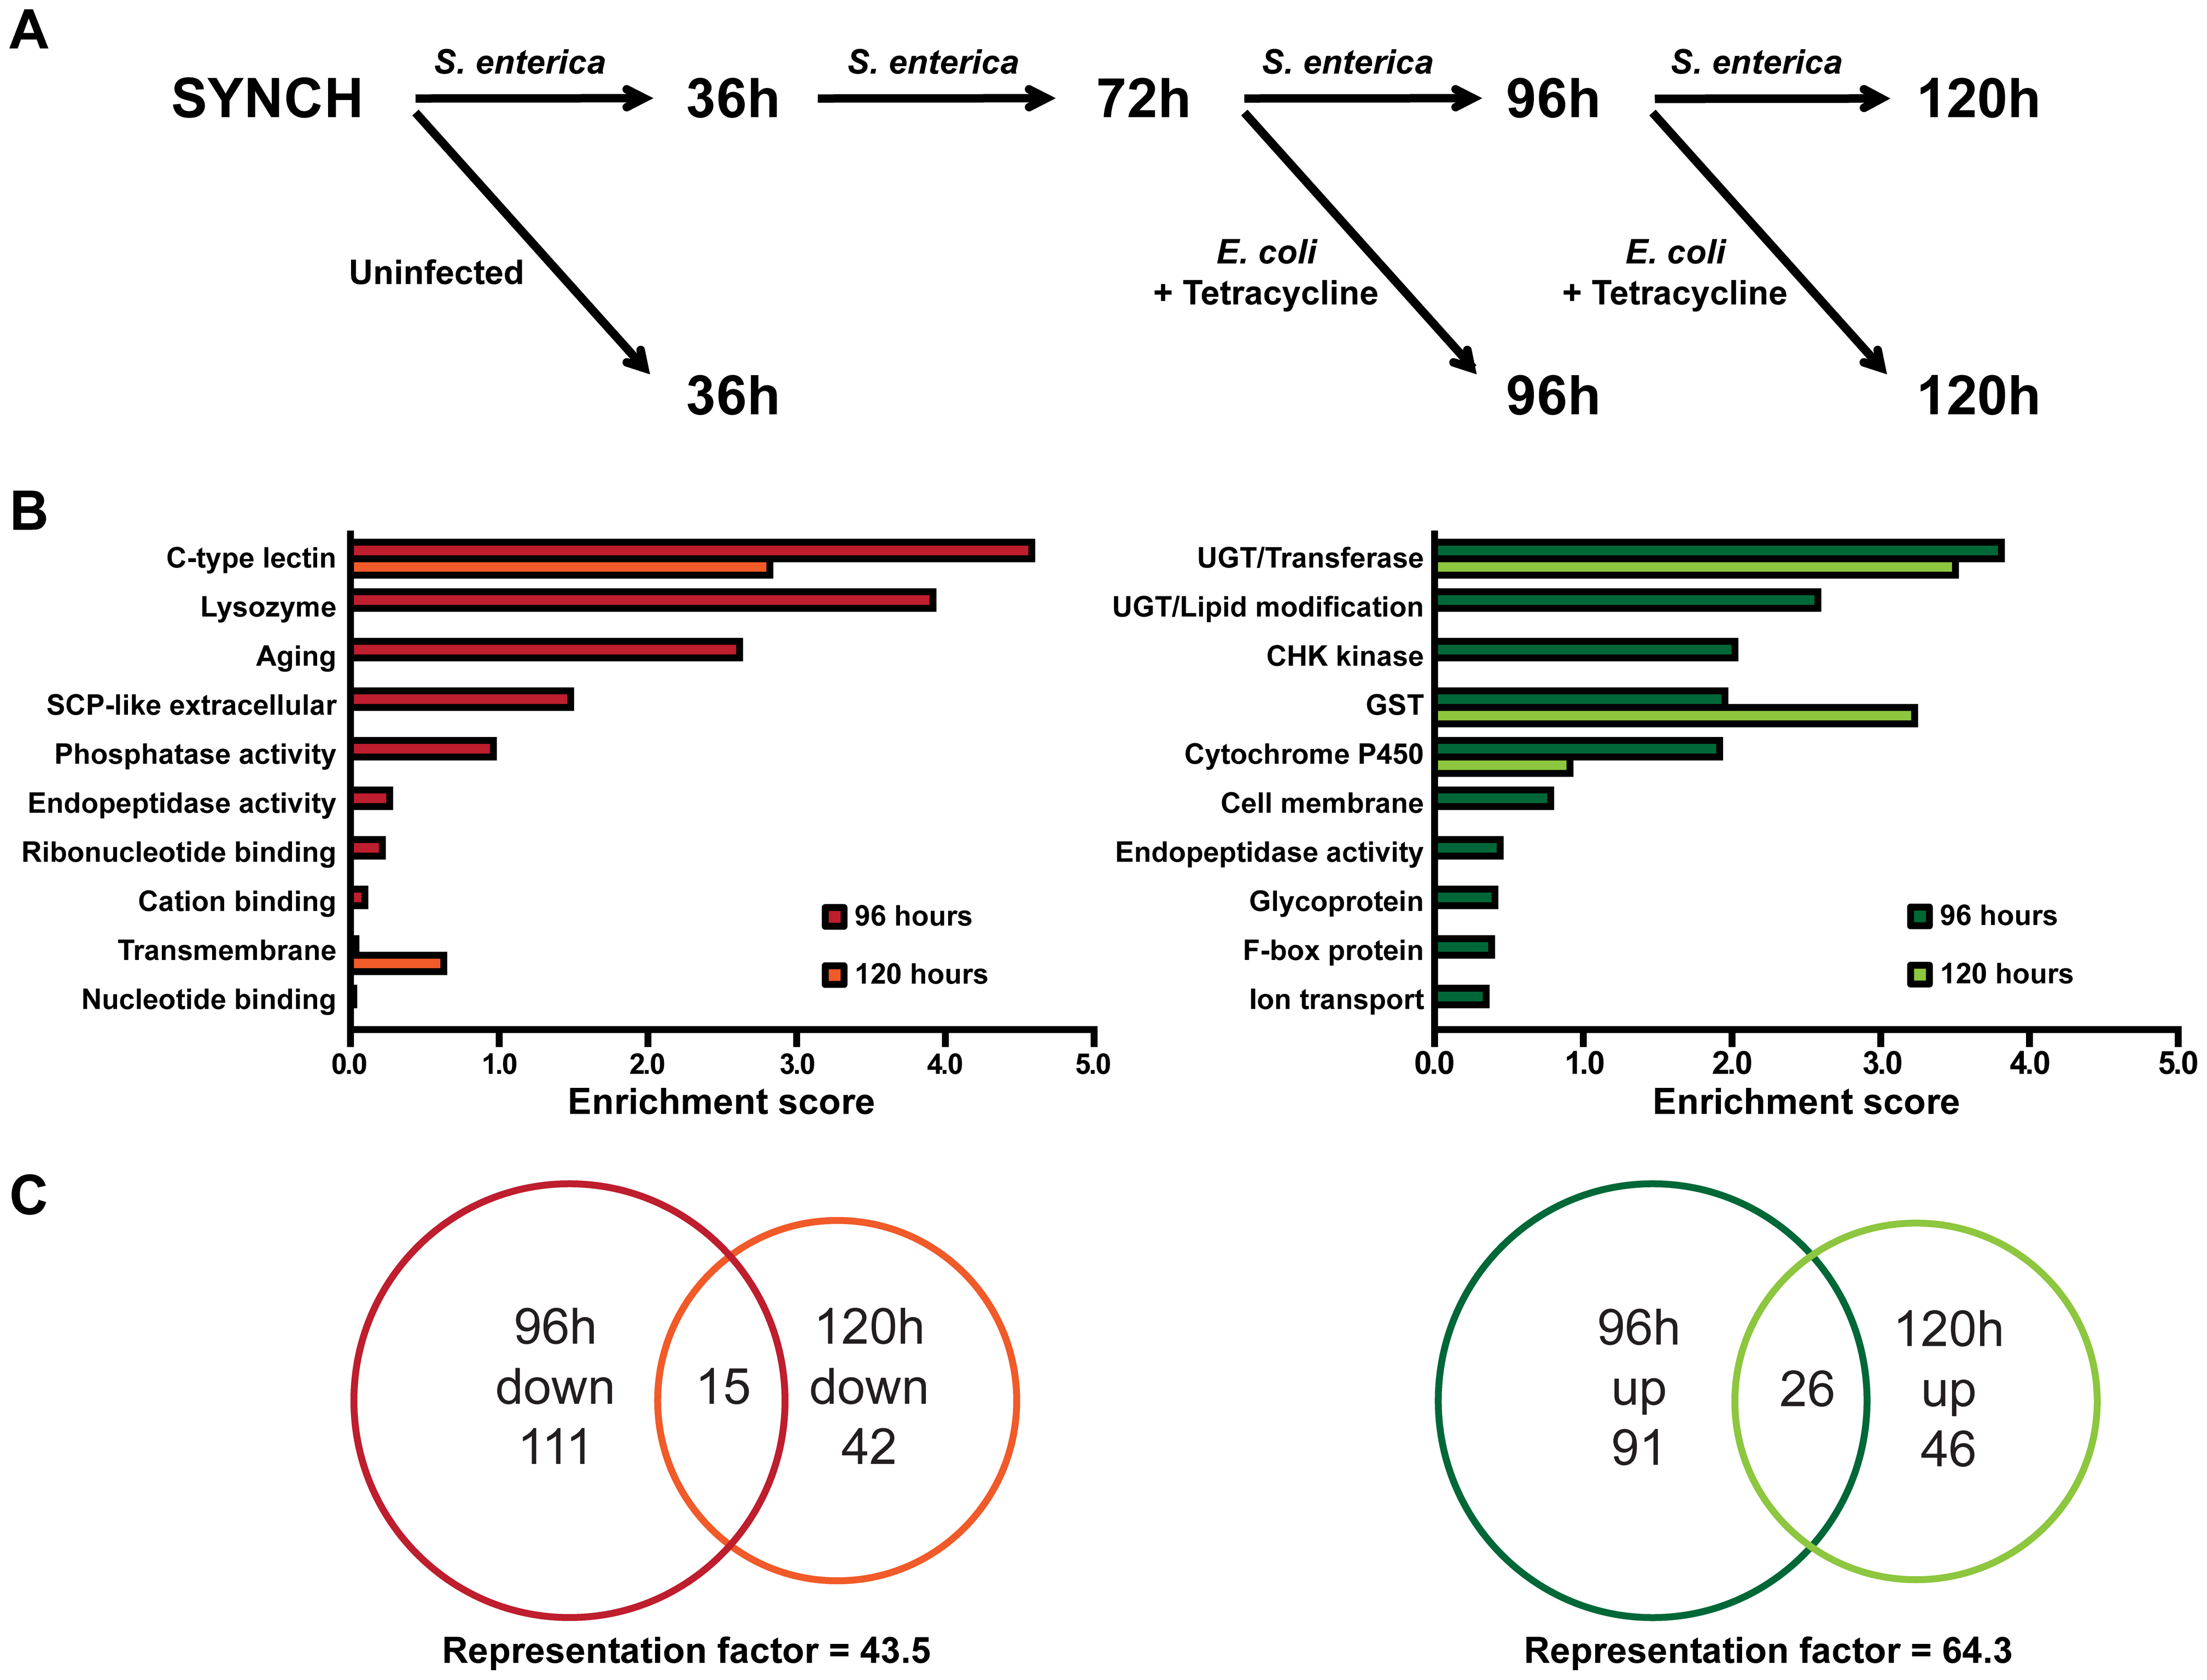 Whole genome expression analysis reveals down-regulated immune response genes and up-regulated detoxification genes during resolution of acute <i>S. enterica</i> infection.